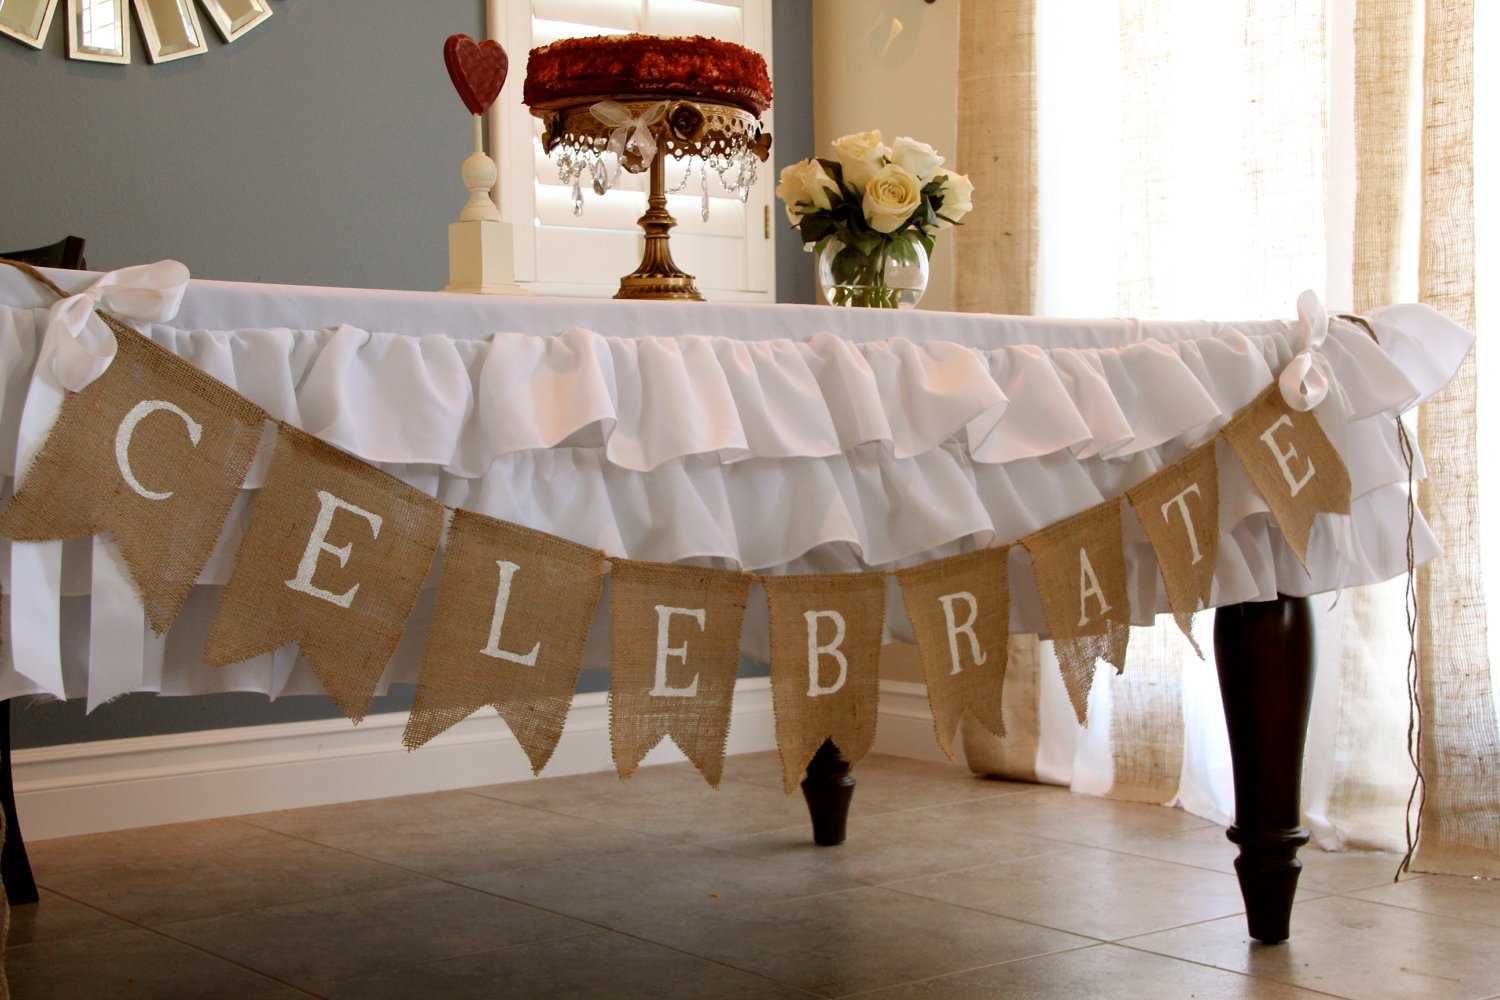 Ever-May Burlap NoFray Table Runner Roll 14 Inches x 25 Yards, 15 Fabric Banner Flags for Placemats, Crafts, Wedding